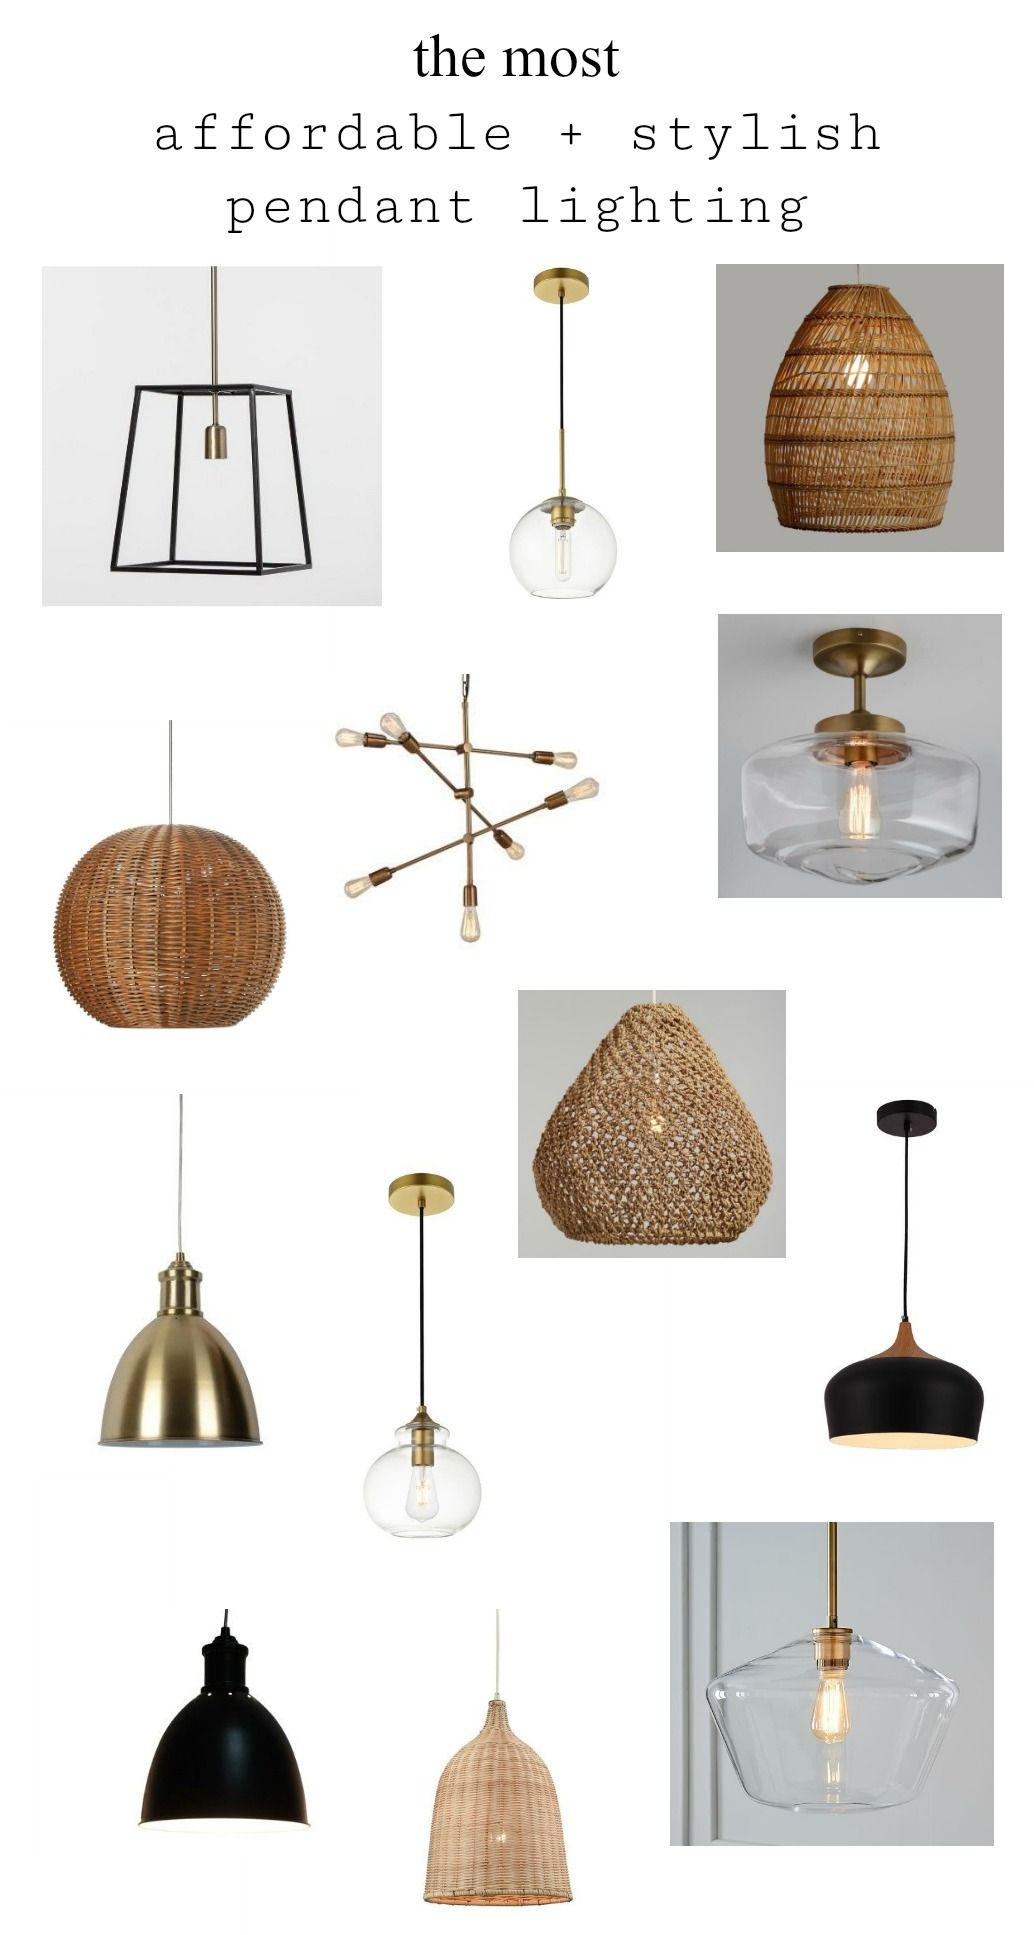 The Most Affordable + Stylish Pendant Lighting #pendantlighting